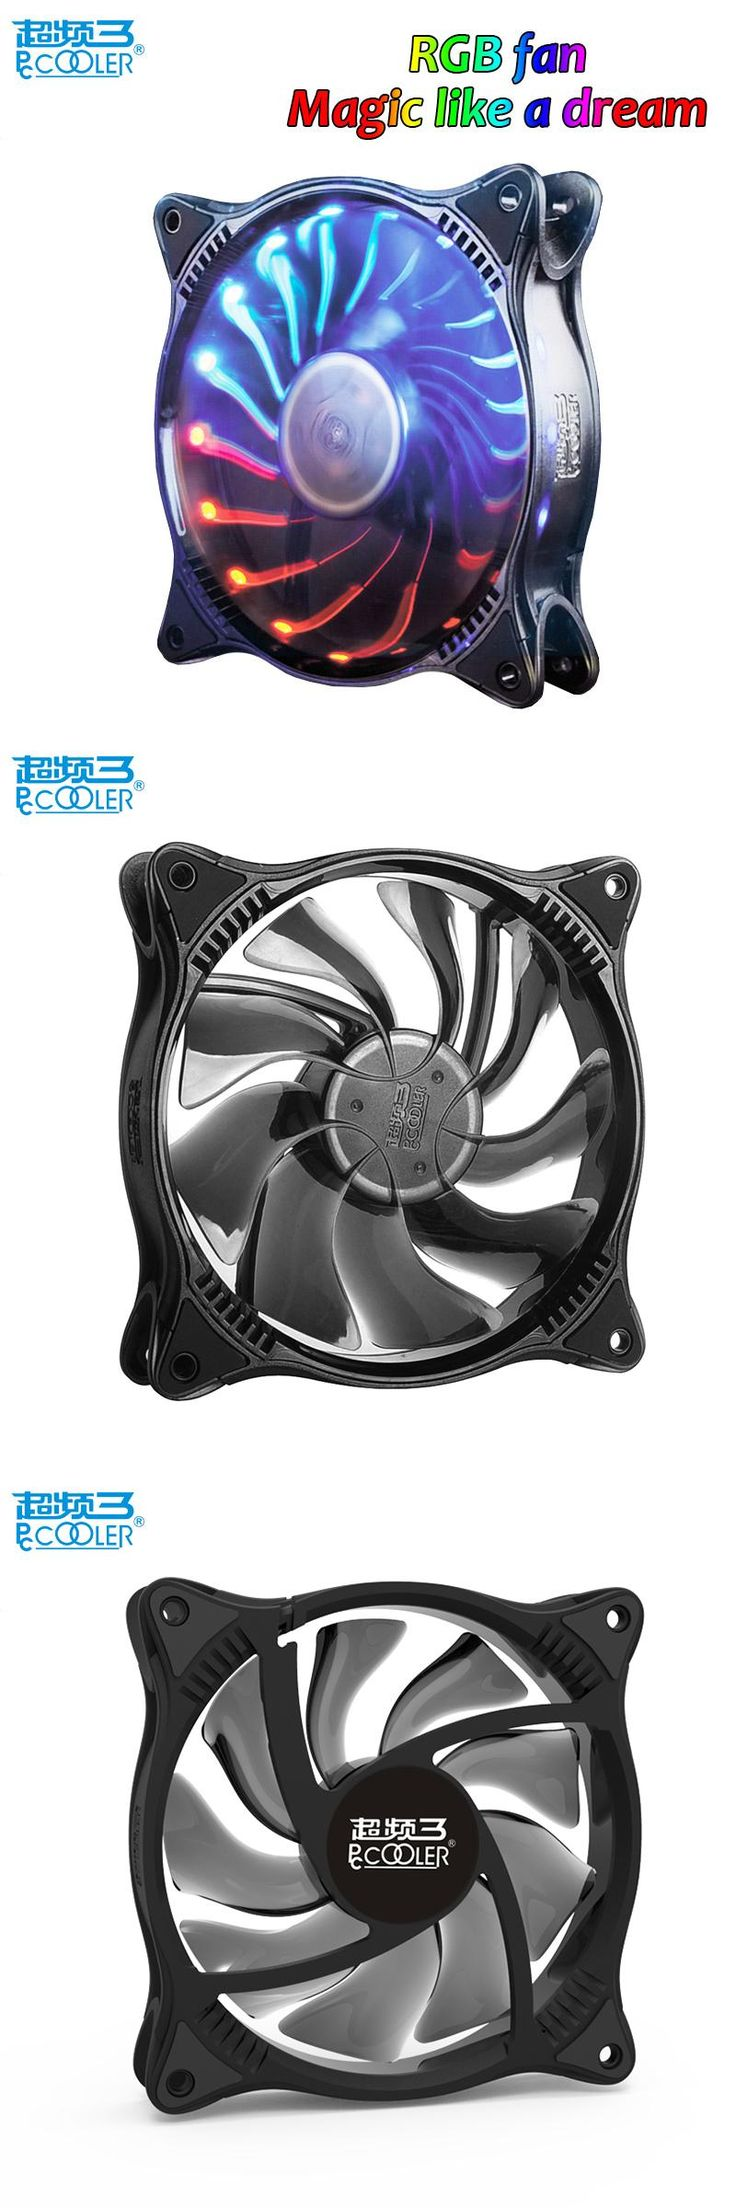 [Visit to Buy] Pccooler Starry Sky 12cm computer pc case cooling fan quite RGB magic adjustable LED 120mm CPU radiator Water cooler fan slient #Advertisement